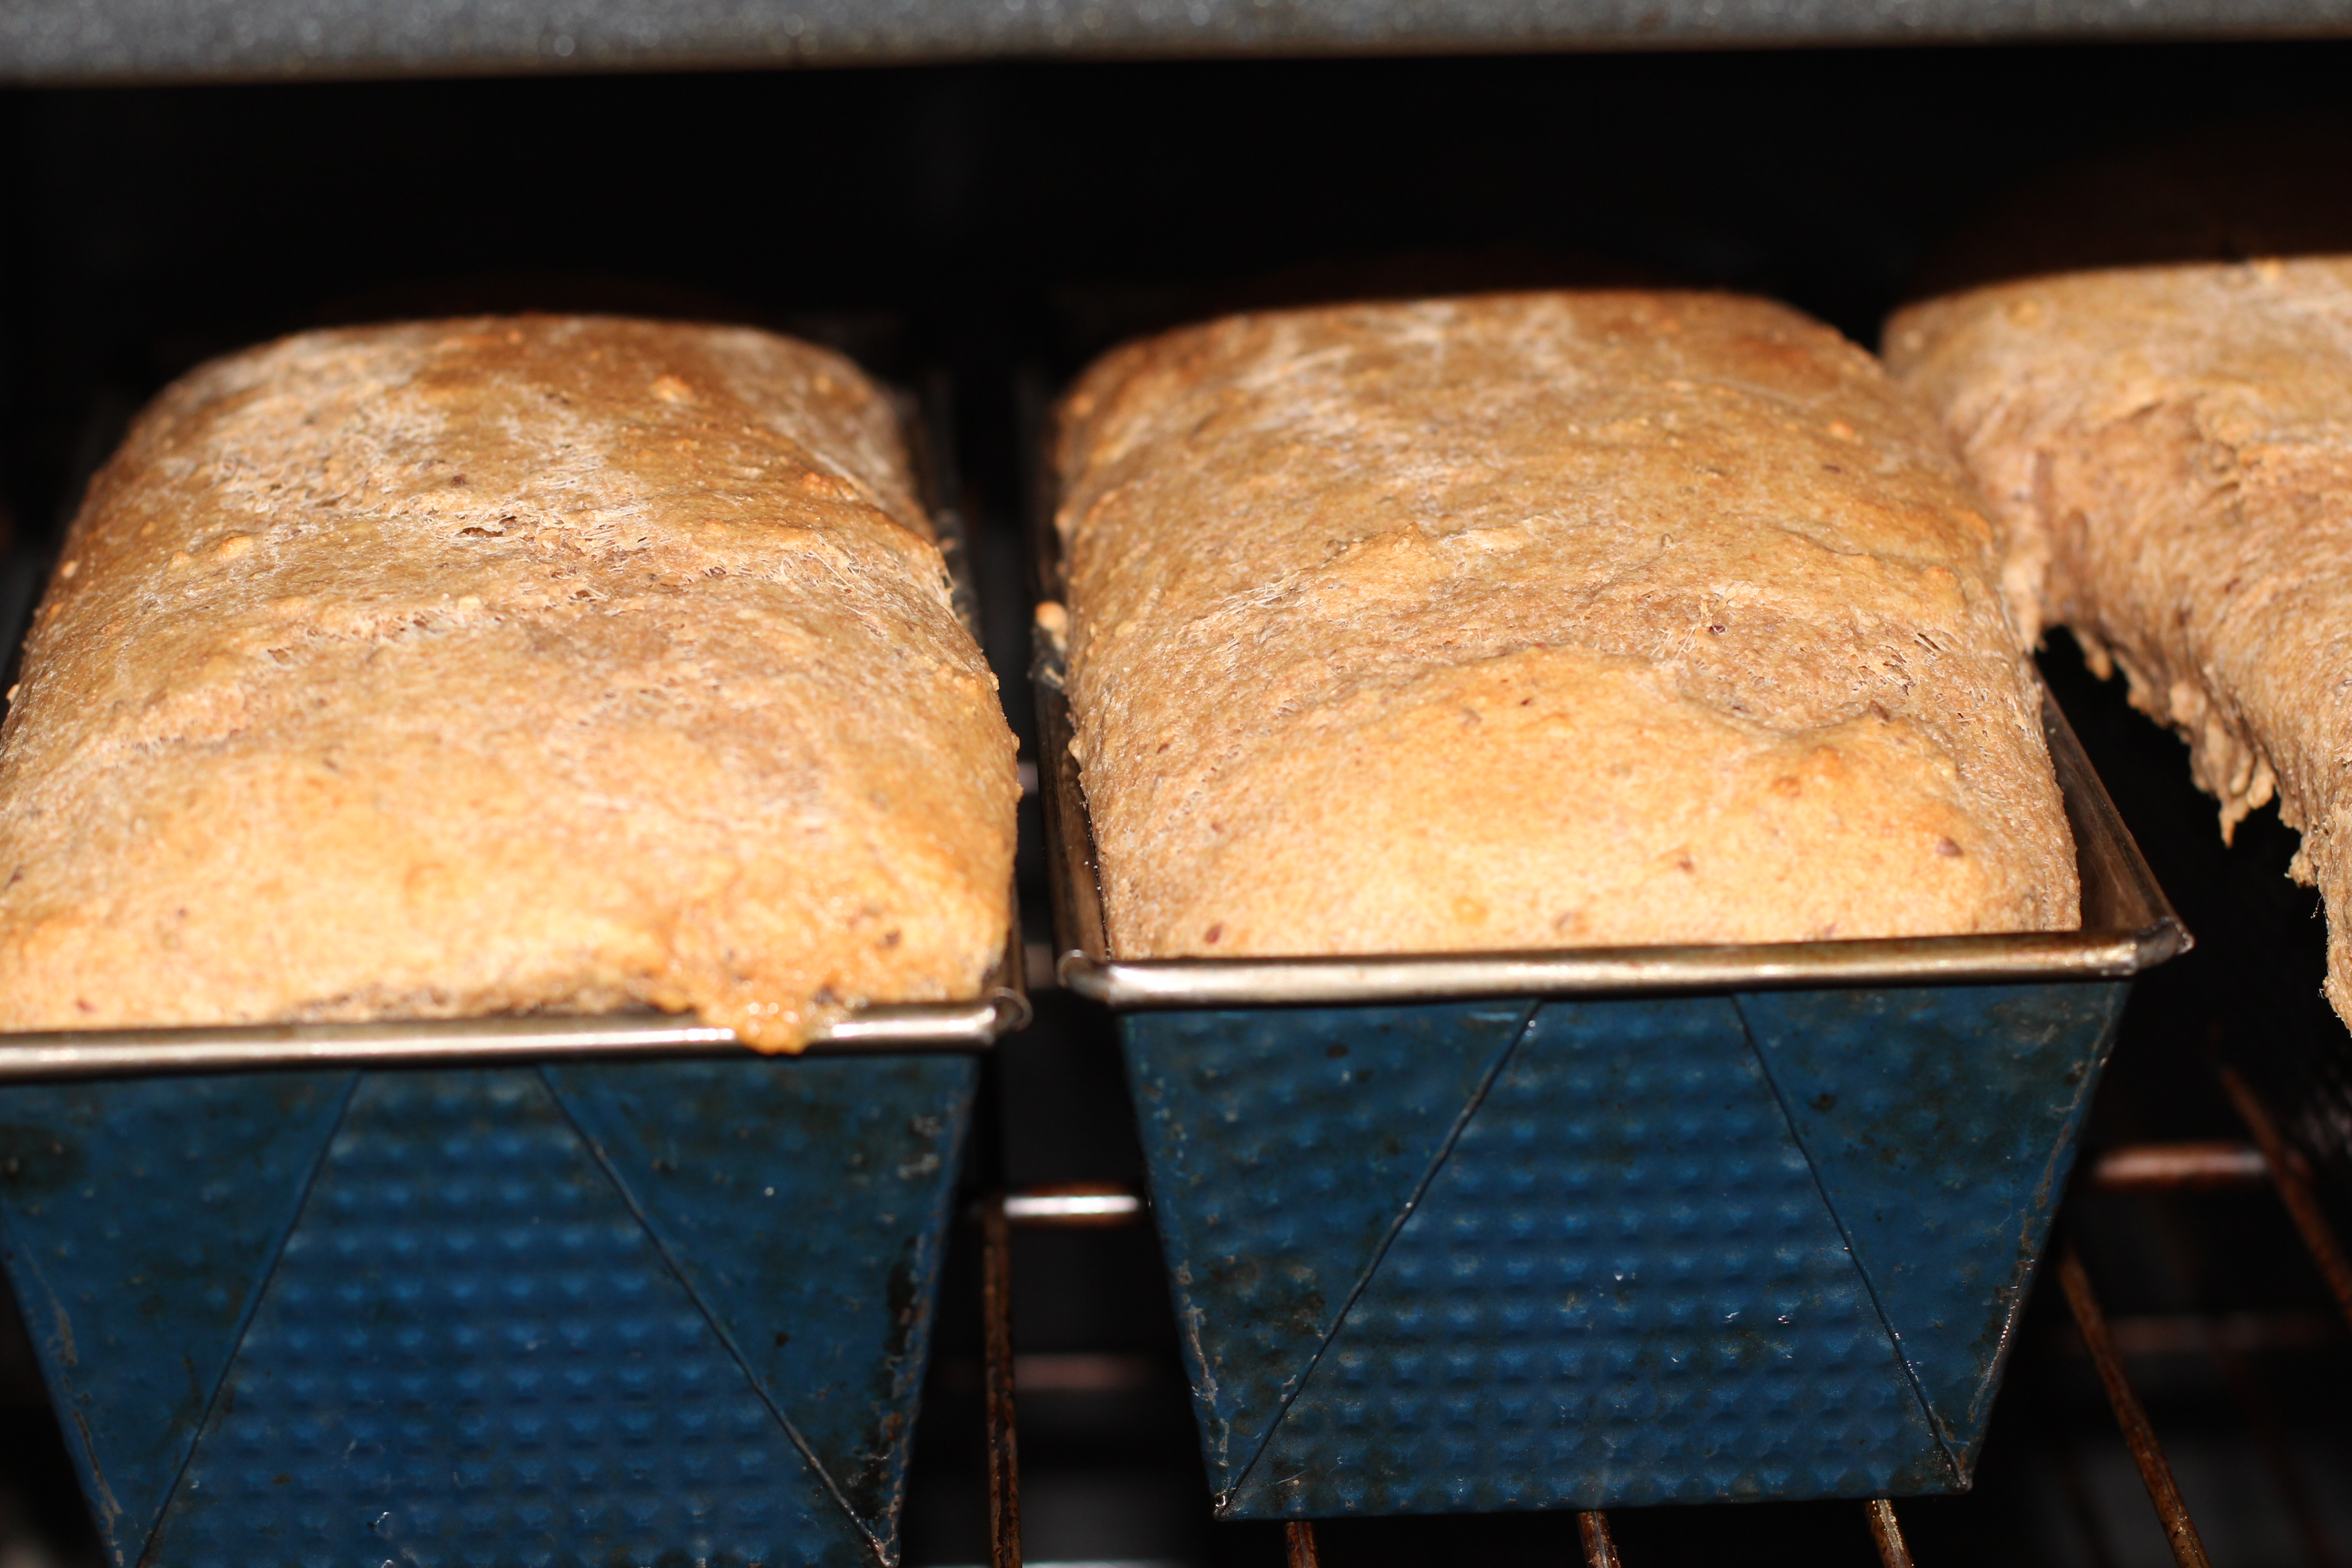 Bread in Oven